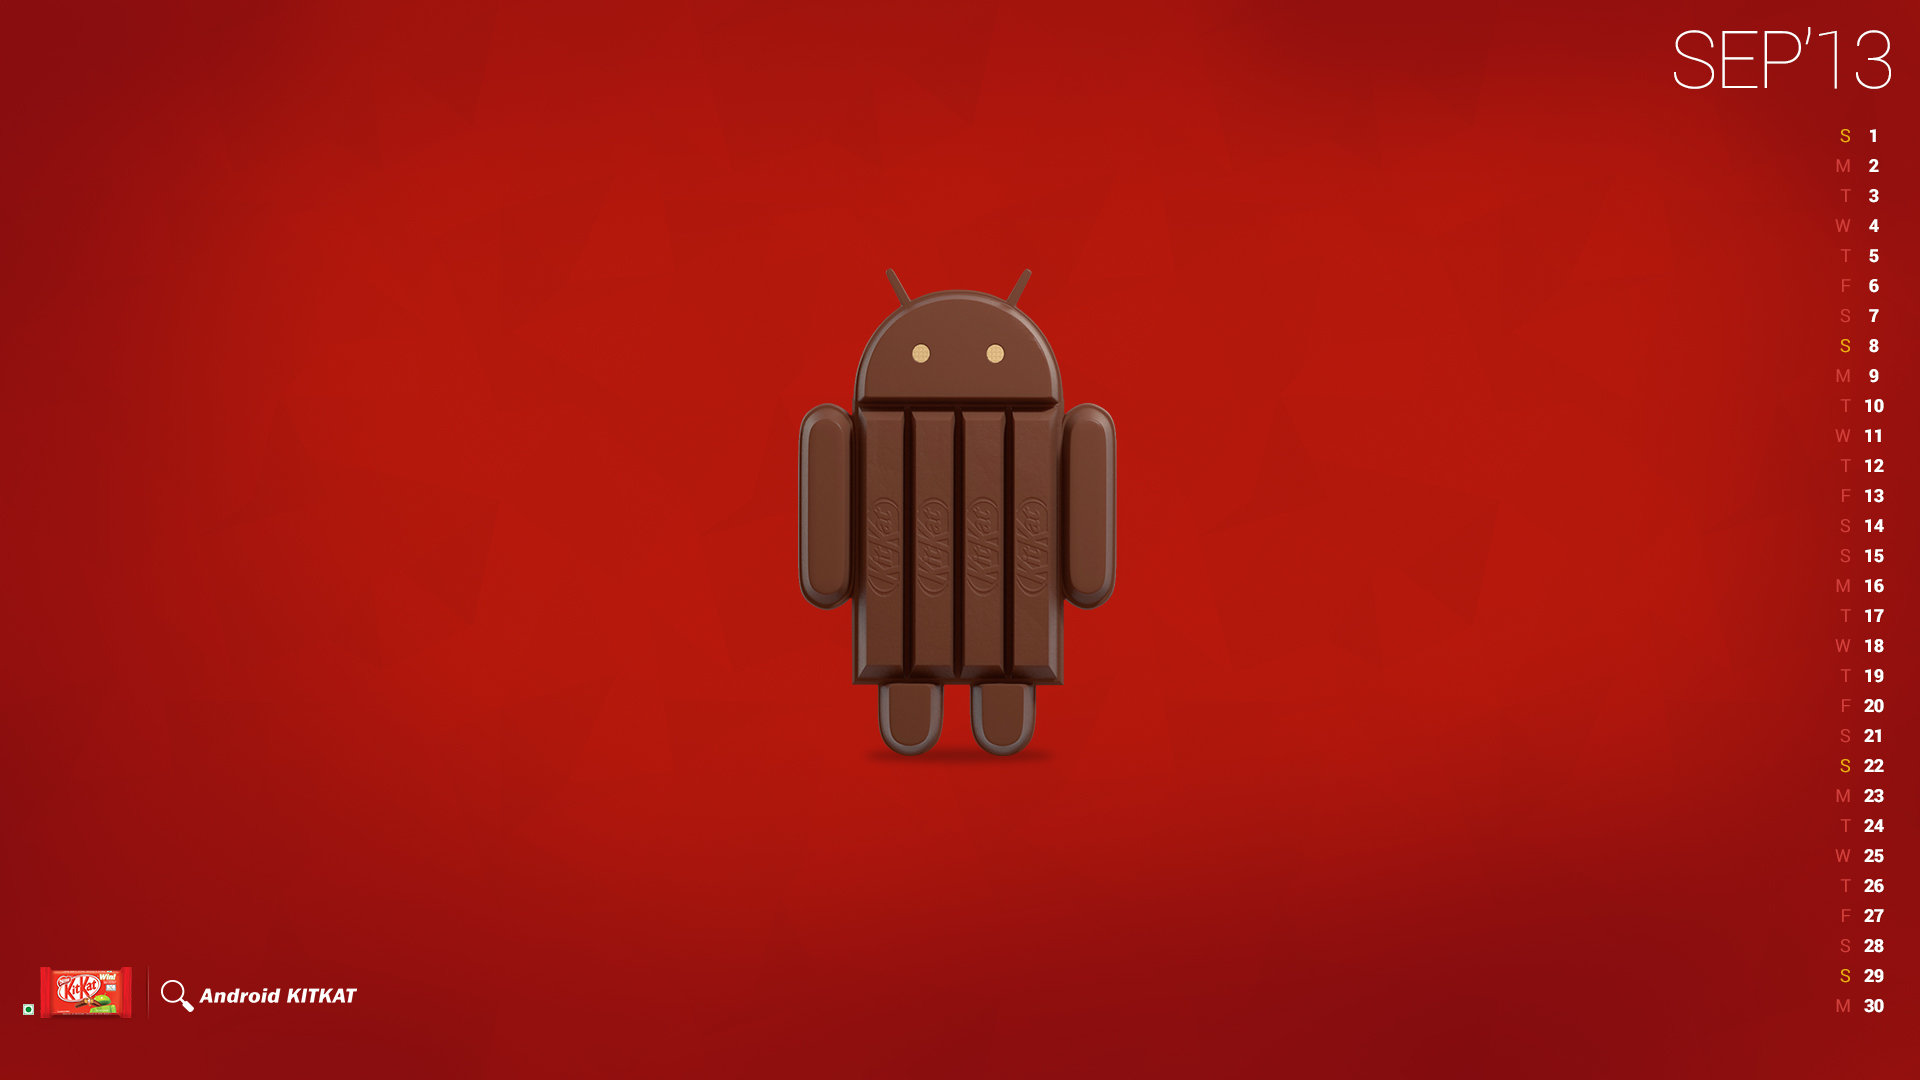 Android 44 kitkat wallpapers method of tried kitkatwall1 voltagebd